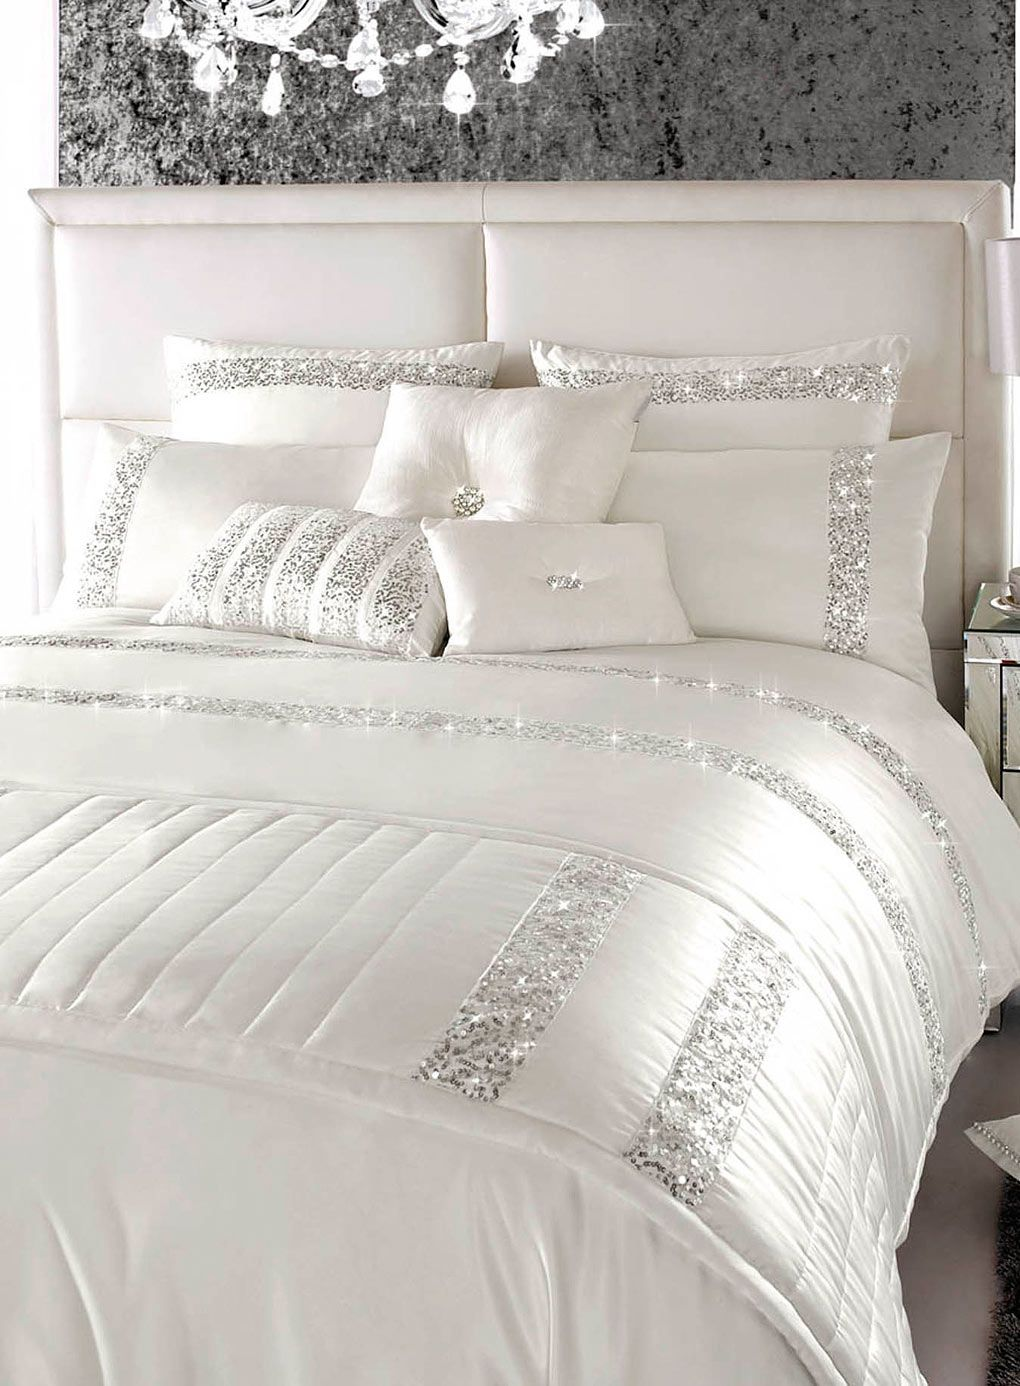 Kylie Minogue Safia Oyster Sequin Bedding Bedding Sets